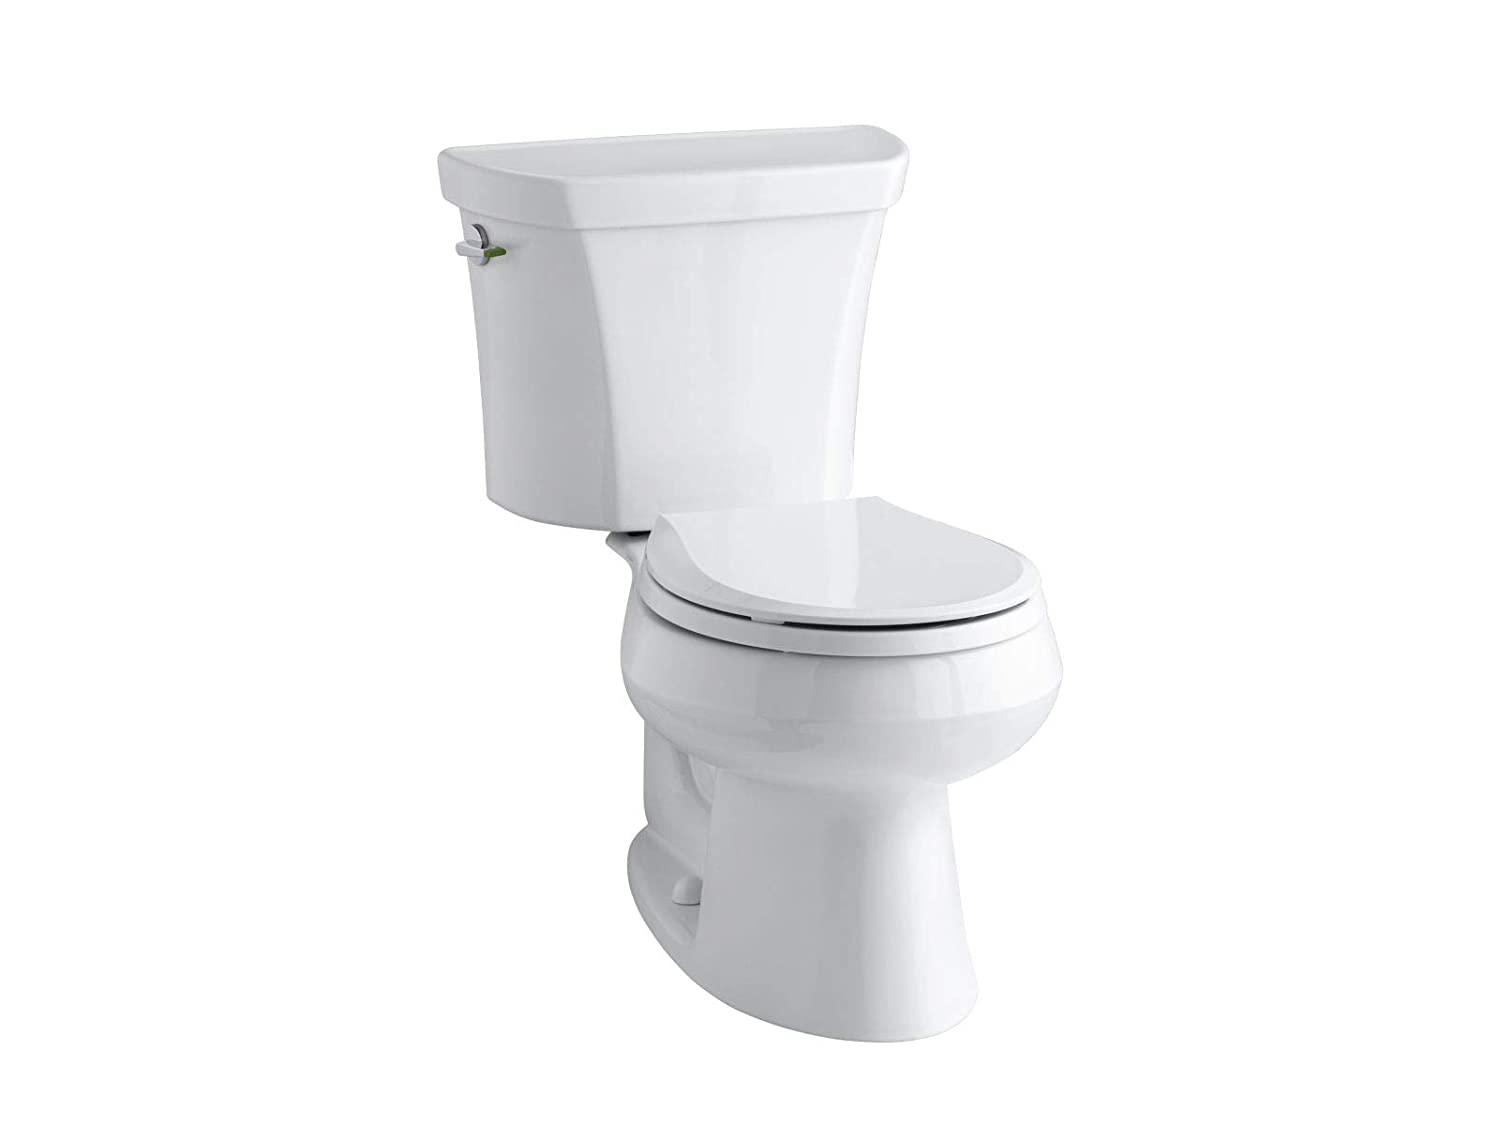 Best Toilets Under $200, $300 to $400 Reviews in 2020 2